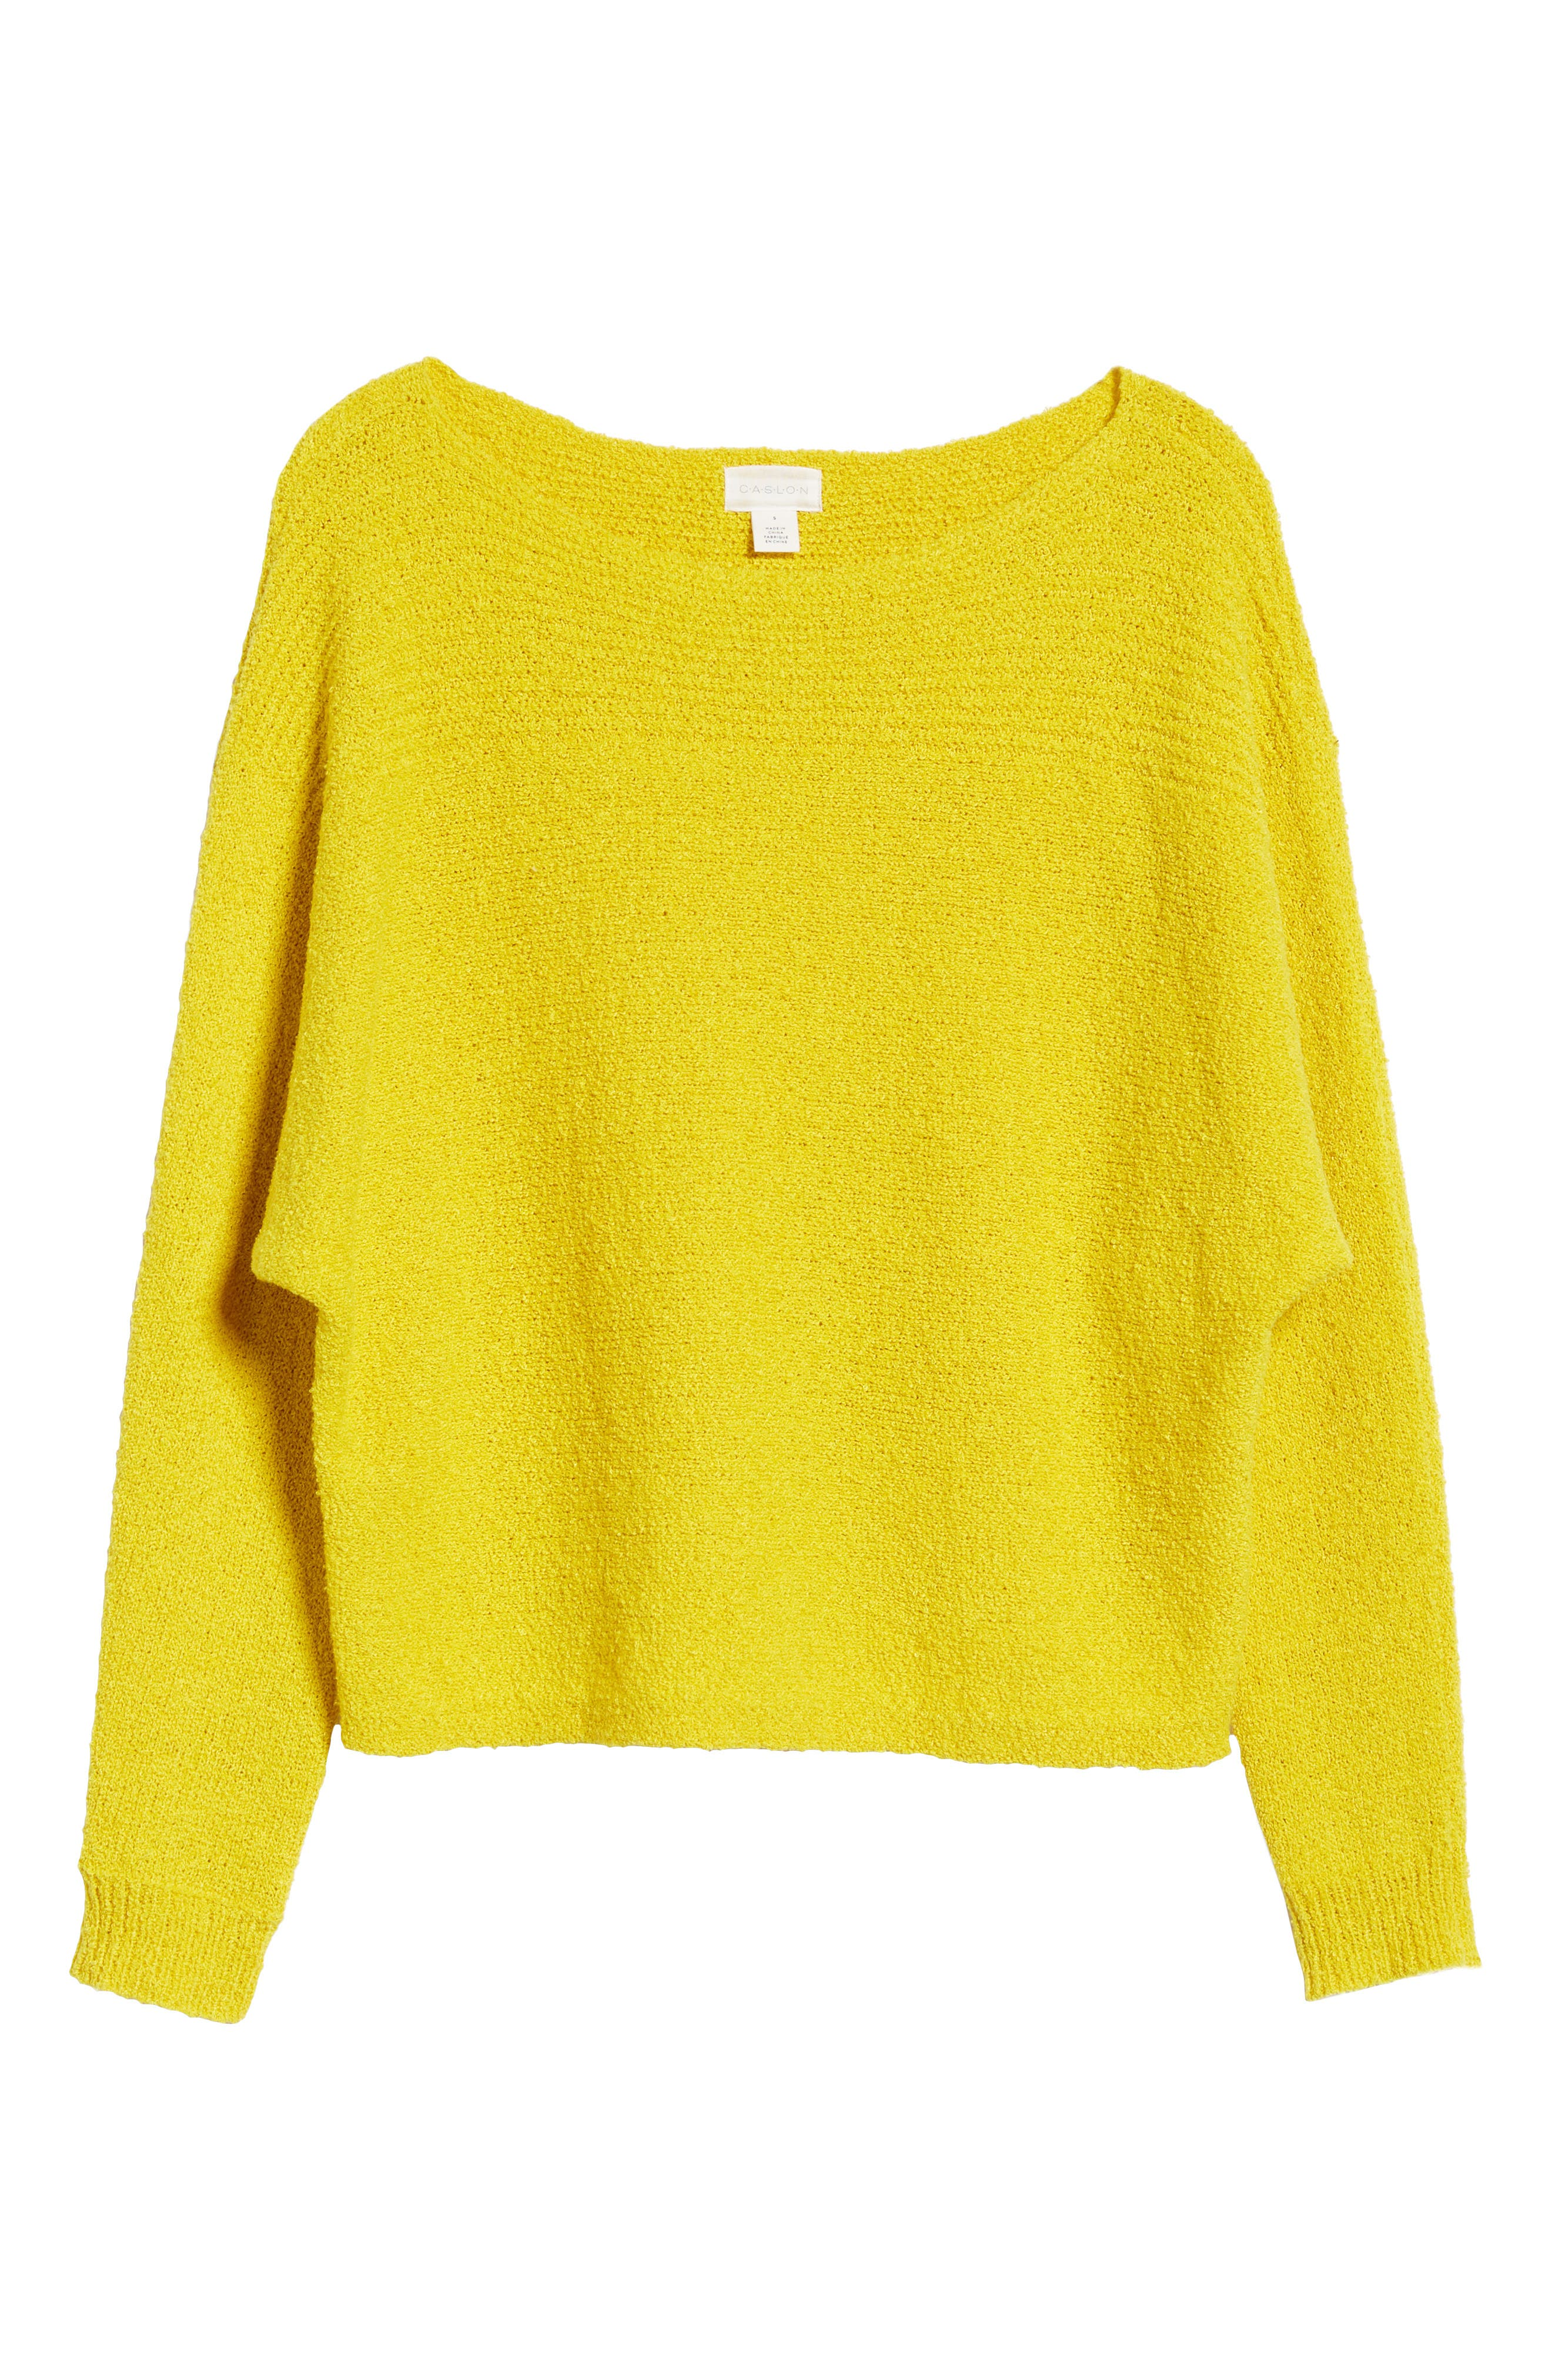 Calson<sup>®</sup> Dolman Sleeve Sweater,                             Alternate thumbnail 29, color,